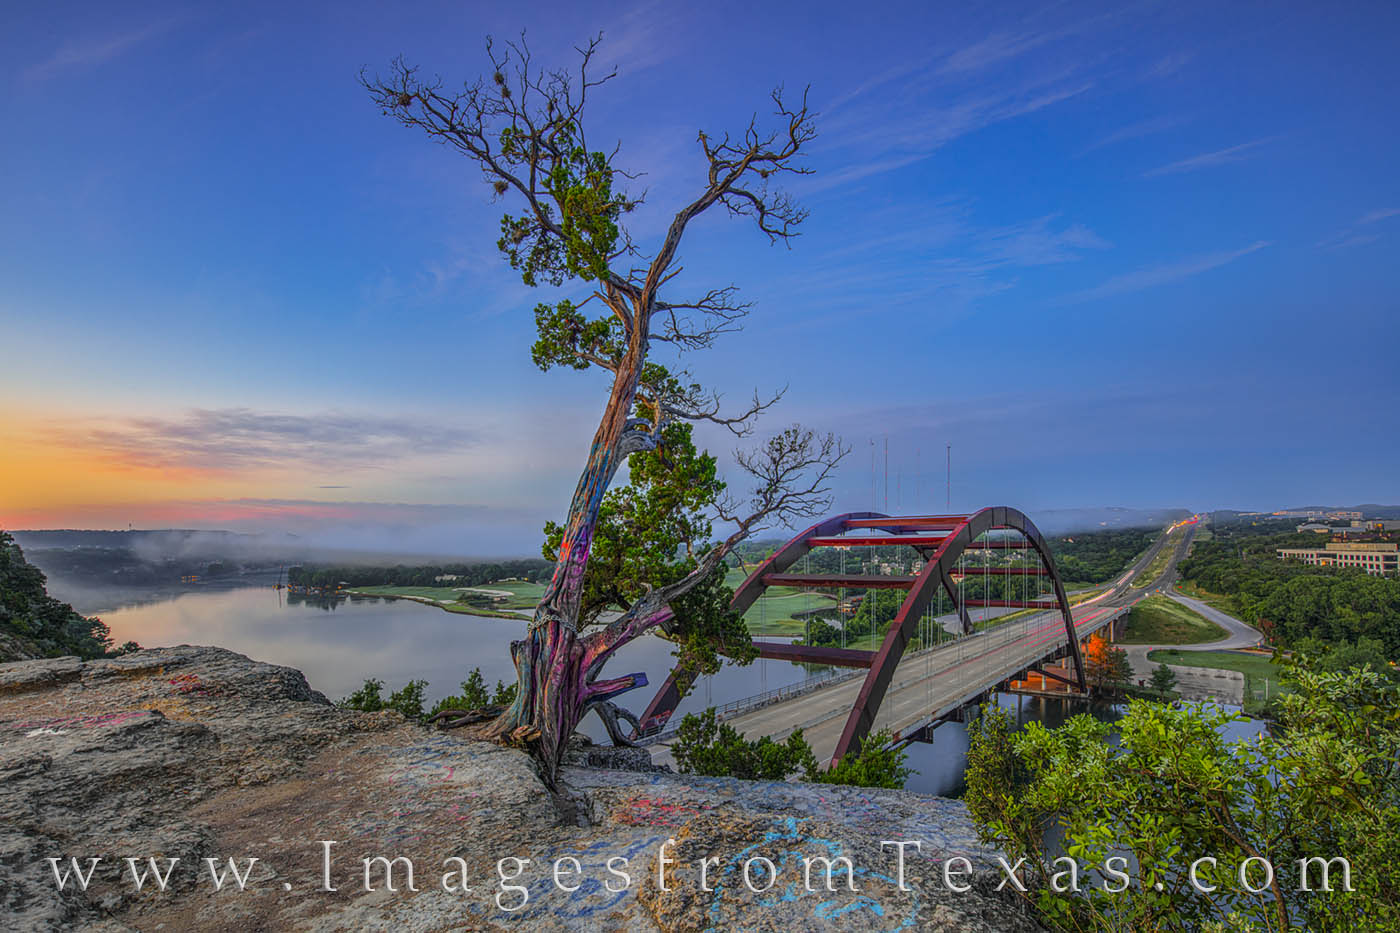 High clouds and low fog fill the air over the Colorado River and Pennybacker Bridge (360 Bridge). From the cliffs overlooking...